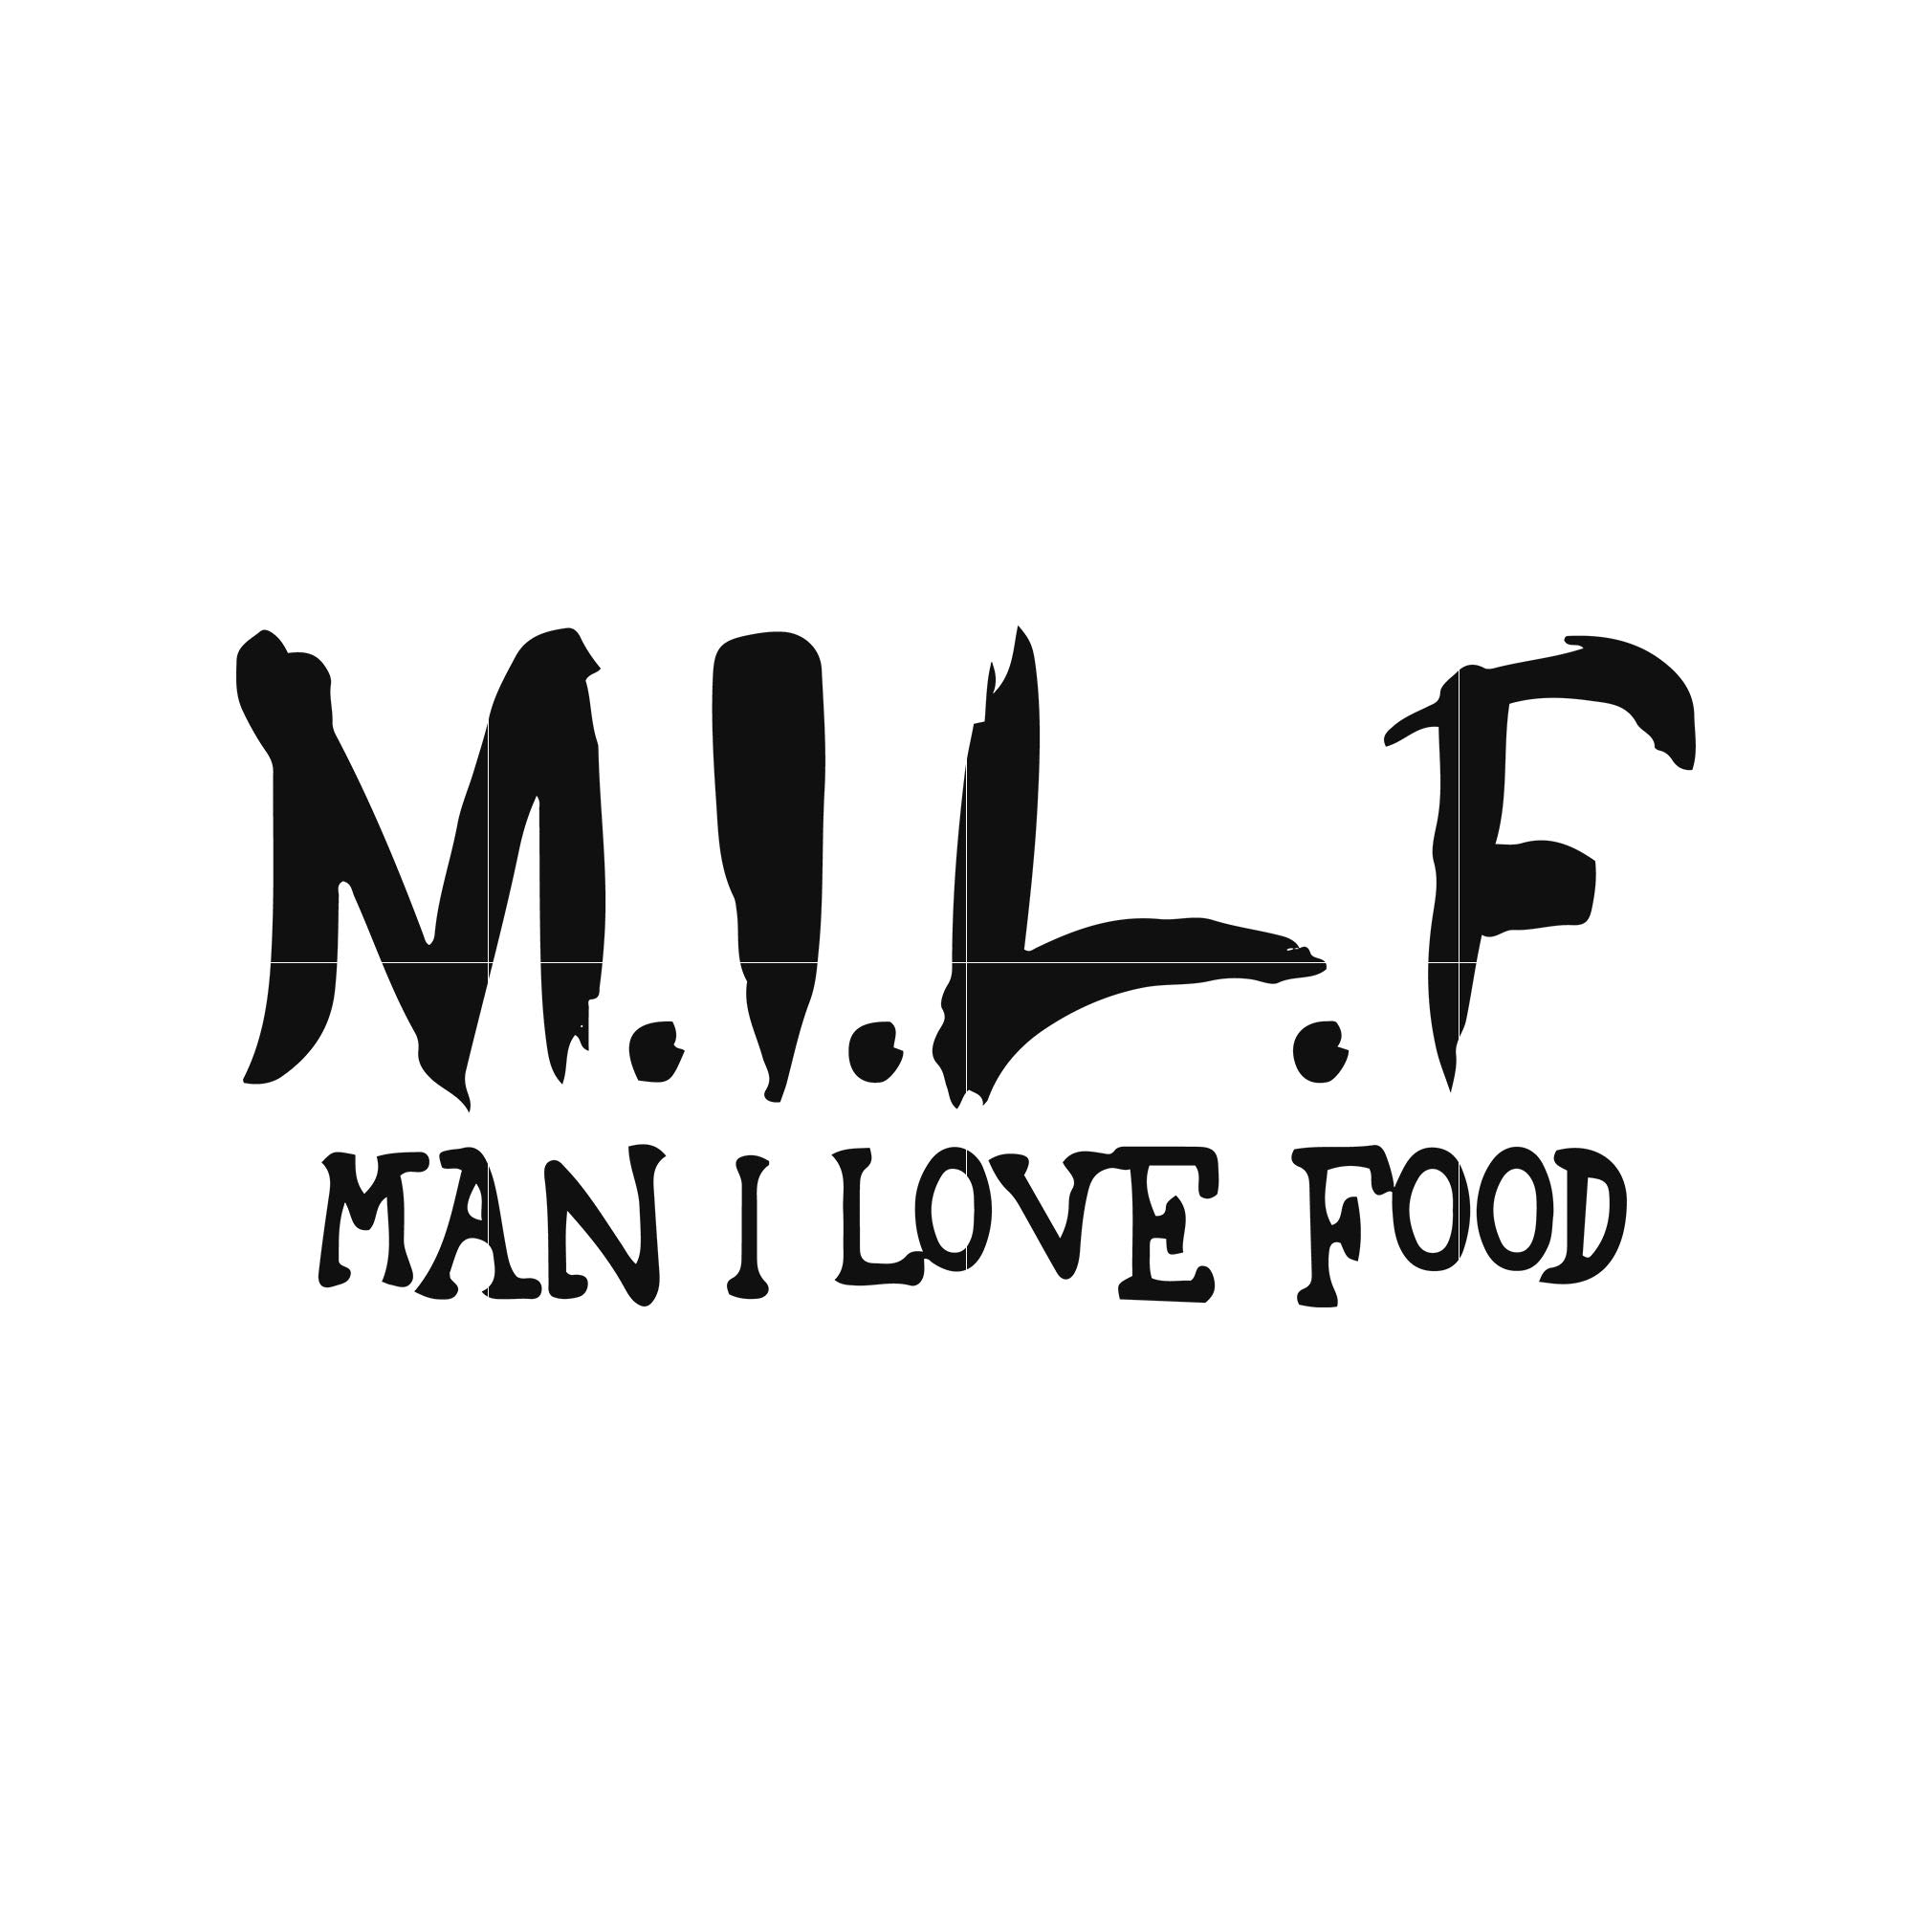 Man i love food svg,dxf,eps,png digital file